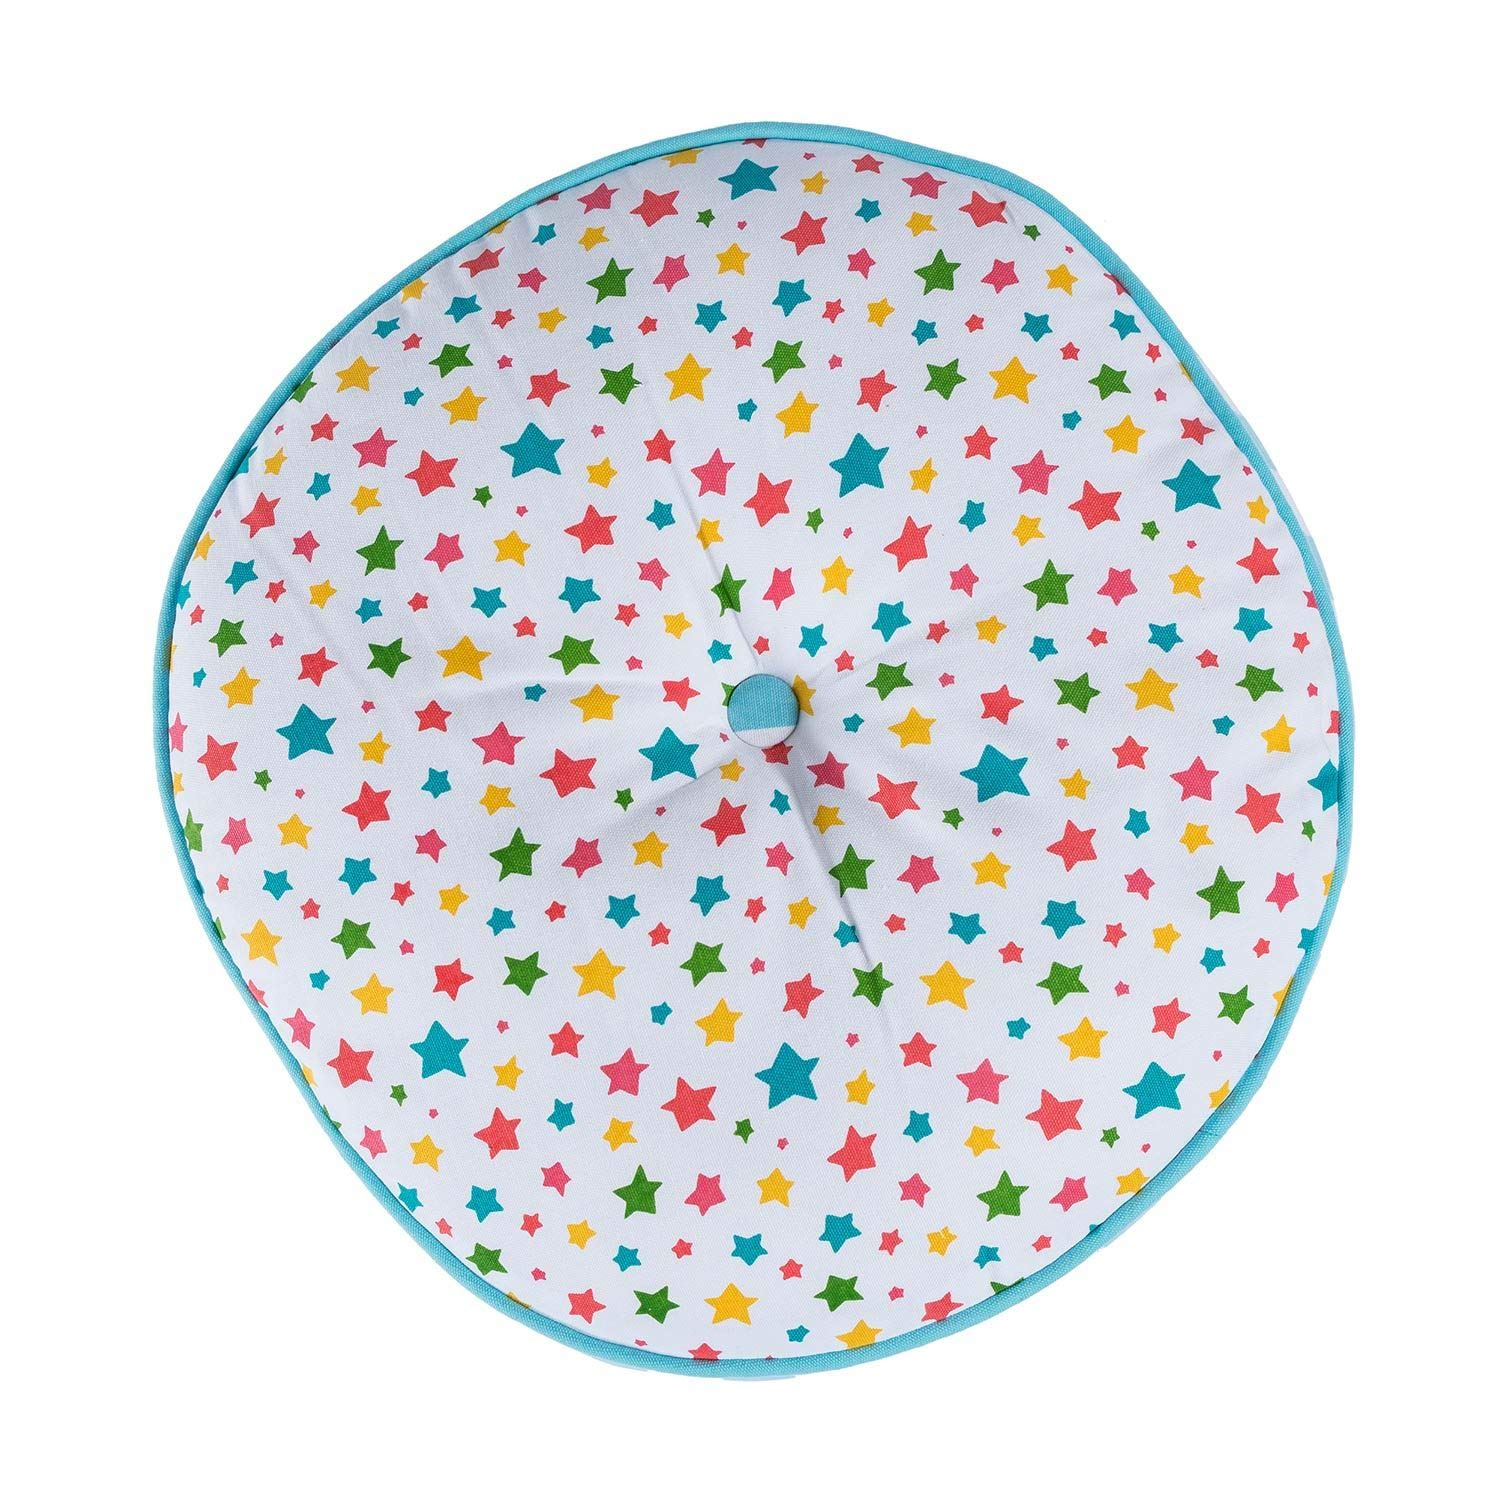 Homescapes Blue Round Floor Cushion Large Decorative Circular Children's & Garden Seat Pad with Polka Dot Pattern, Pre-Filled 100% Cotton Indoor and Outdoor Cushion, 43cm